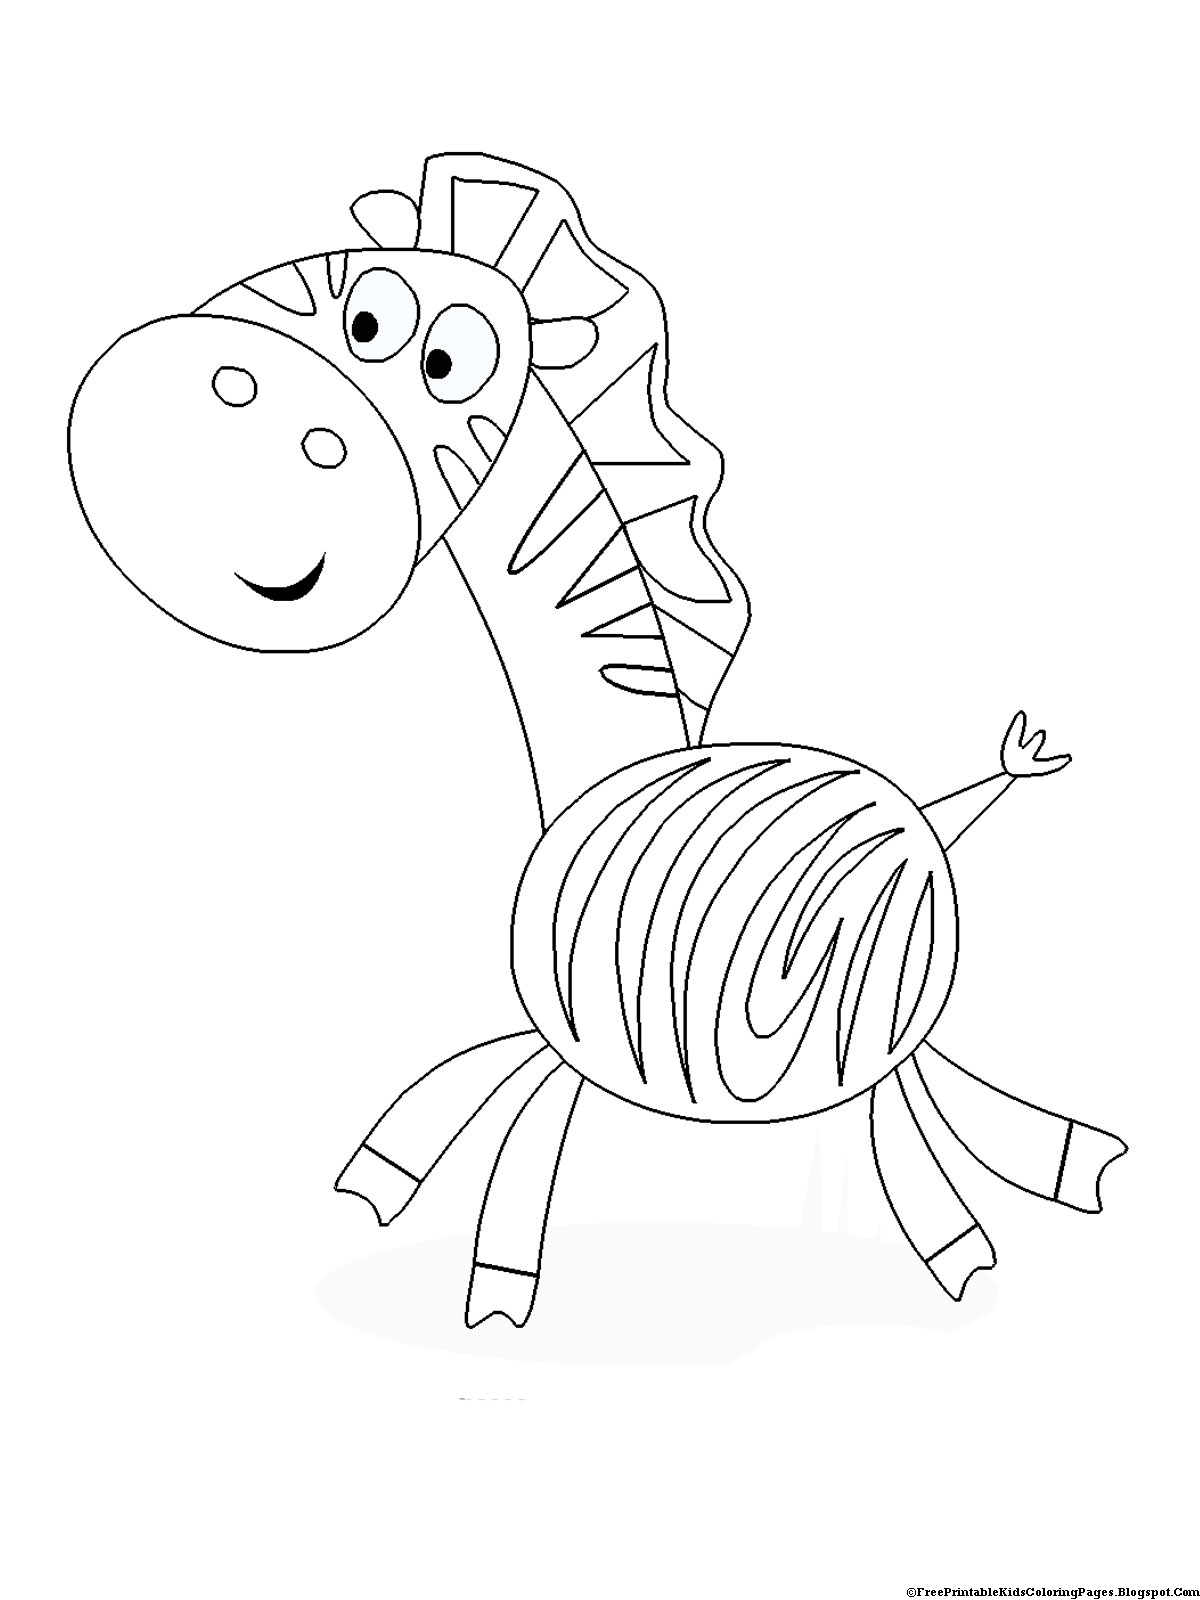 free printable pages zebra coloring pages free printable kids coloring pages free printable pages